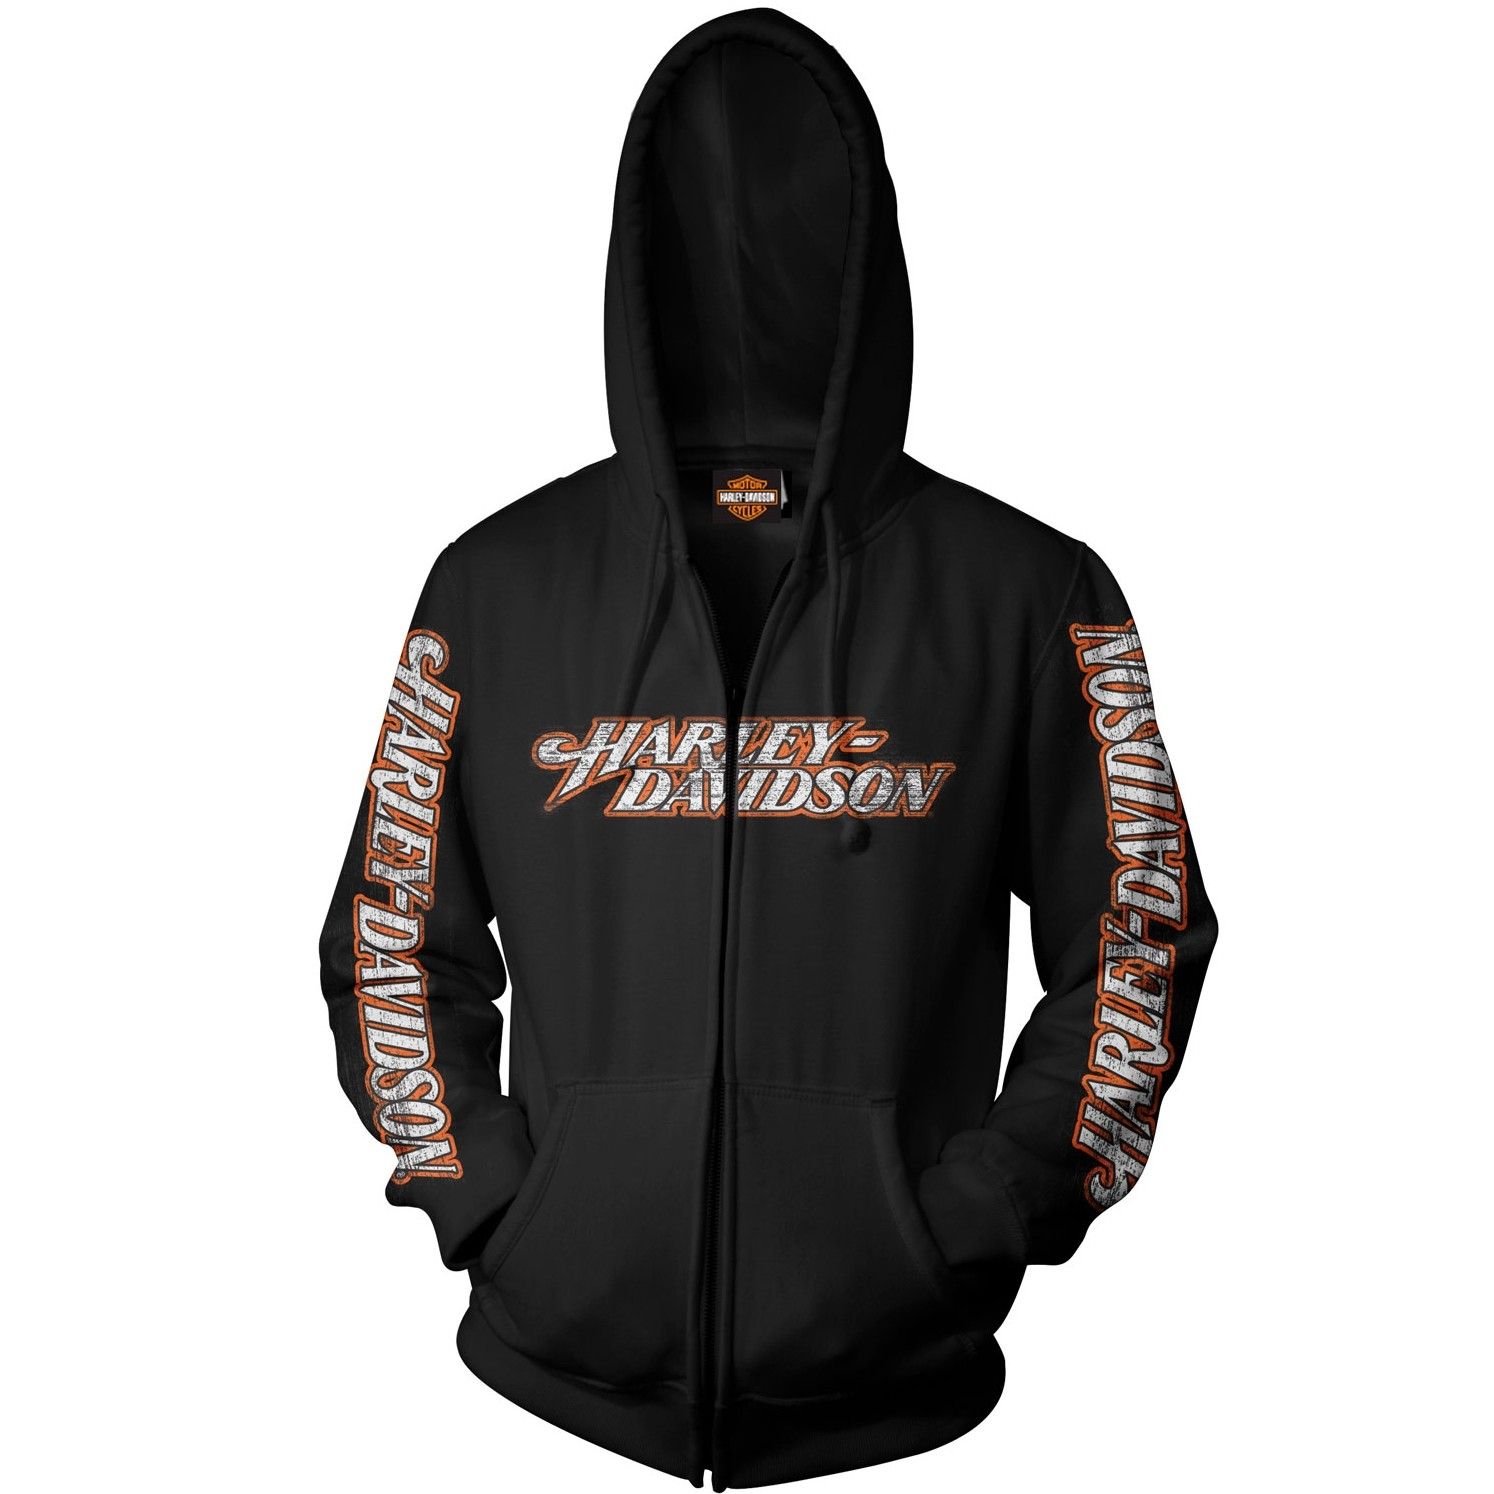 Harley-Davidson Zippered Hooded Sweatshirt - Overseas Tour | Everlong